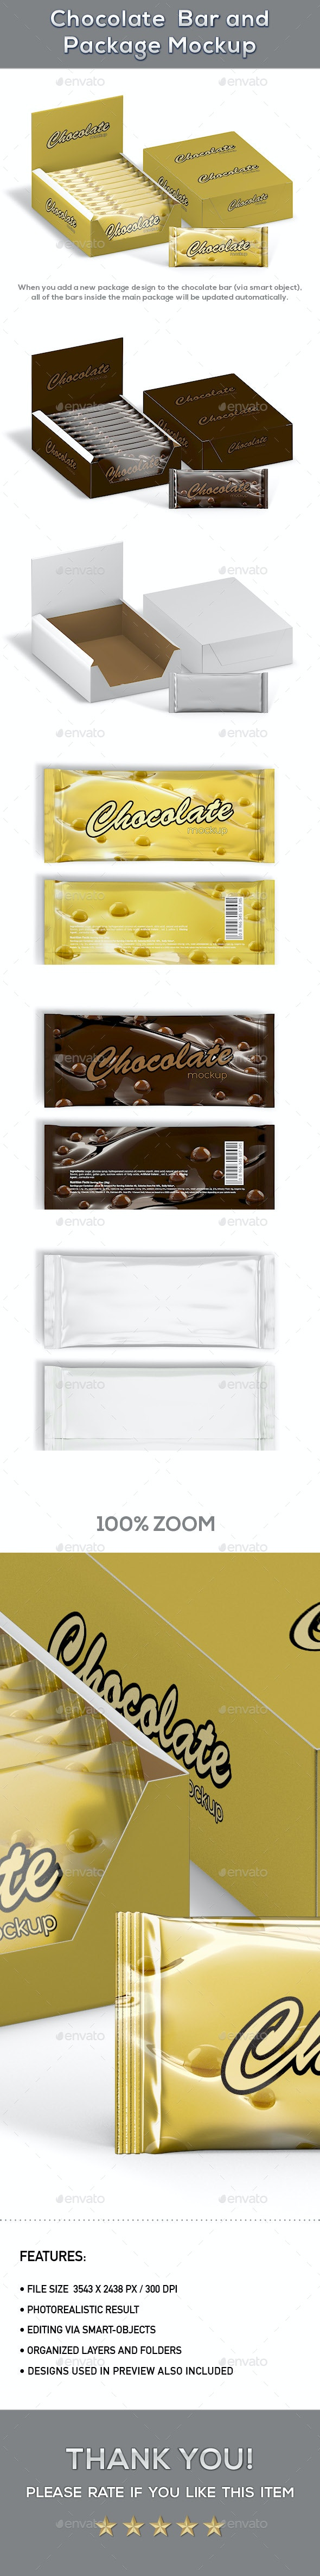 Chocolate Bar And Package Mockup - Product Mock-Ups Graphics